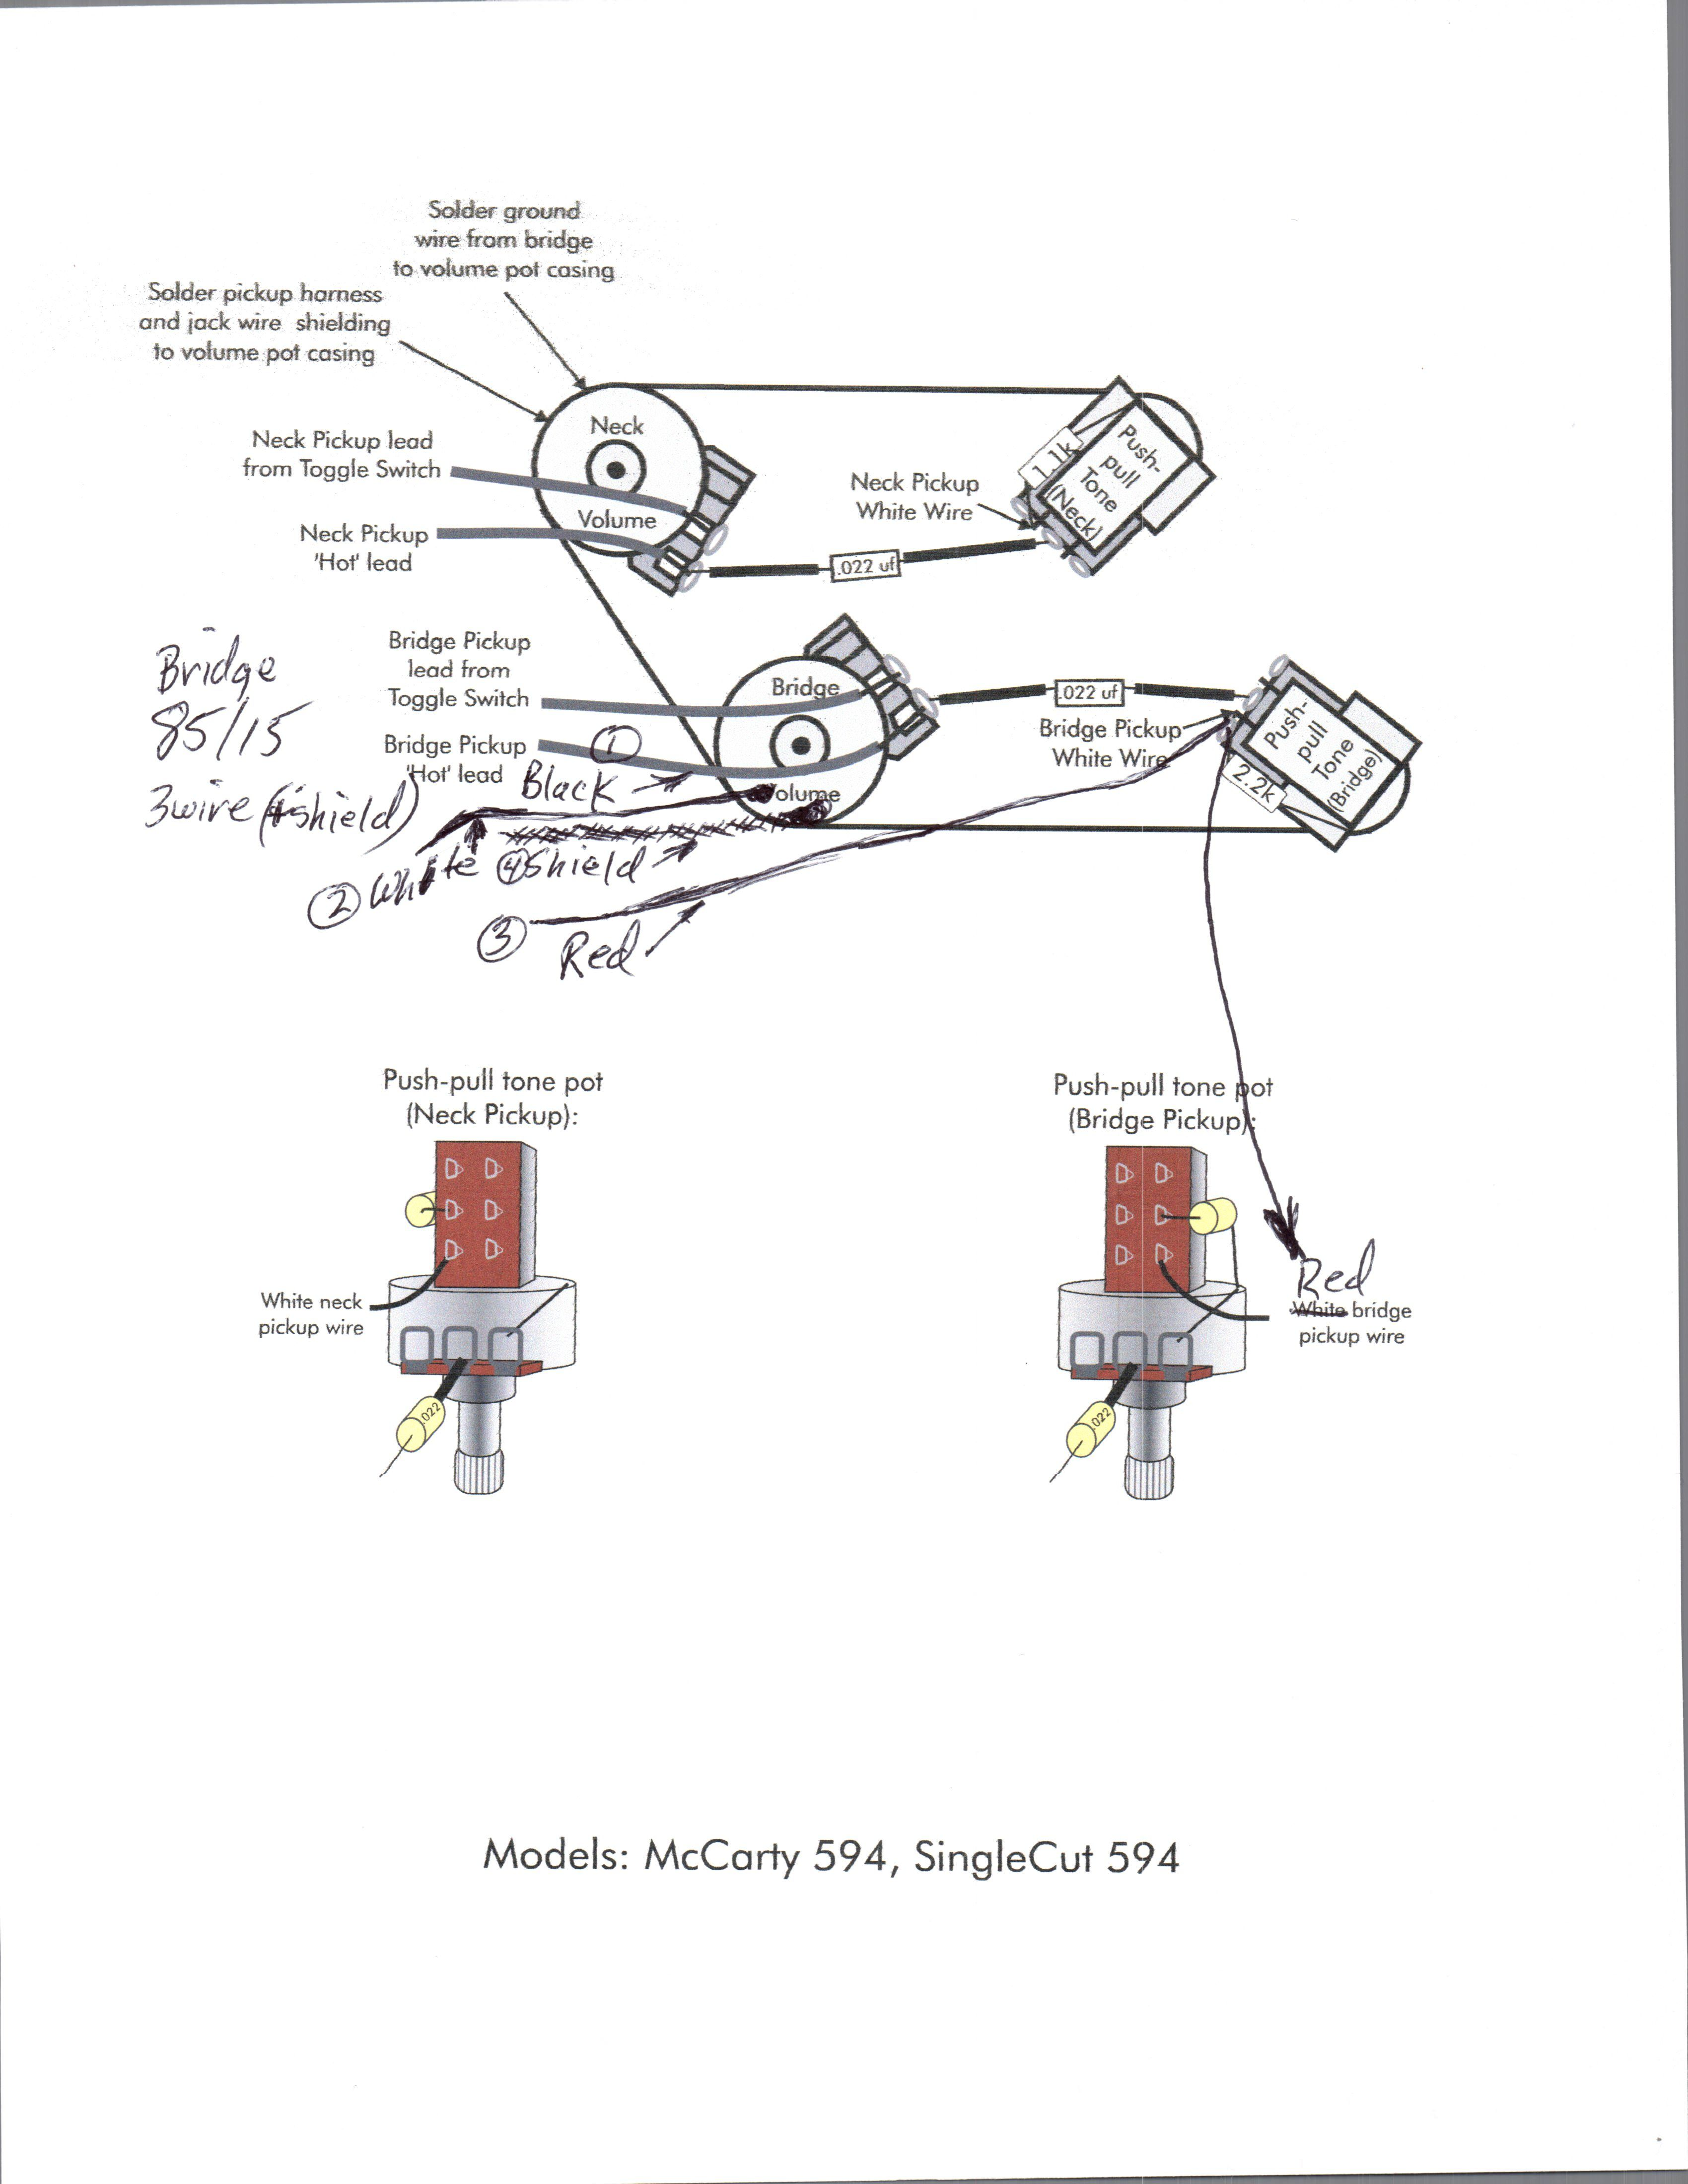 [DIAGRAM_3US]  TV_1346] Guitar Wiring Diagrams Pdf Moreover Prs Guitar Wiring Diagrams  Download Diagram | Wiring Diagram Prs Dragon 2 |  | Boapu Anist Penghe Arch Joami Mohammedshrine Librar Wiring 101